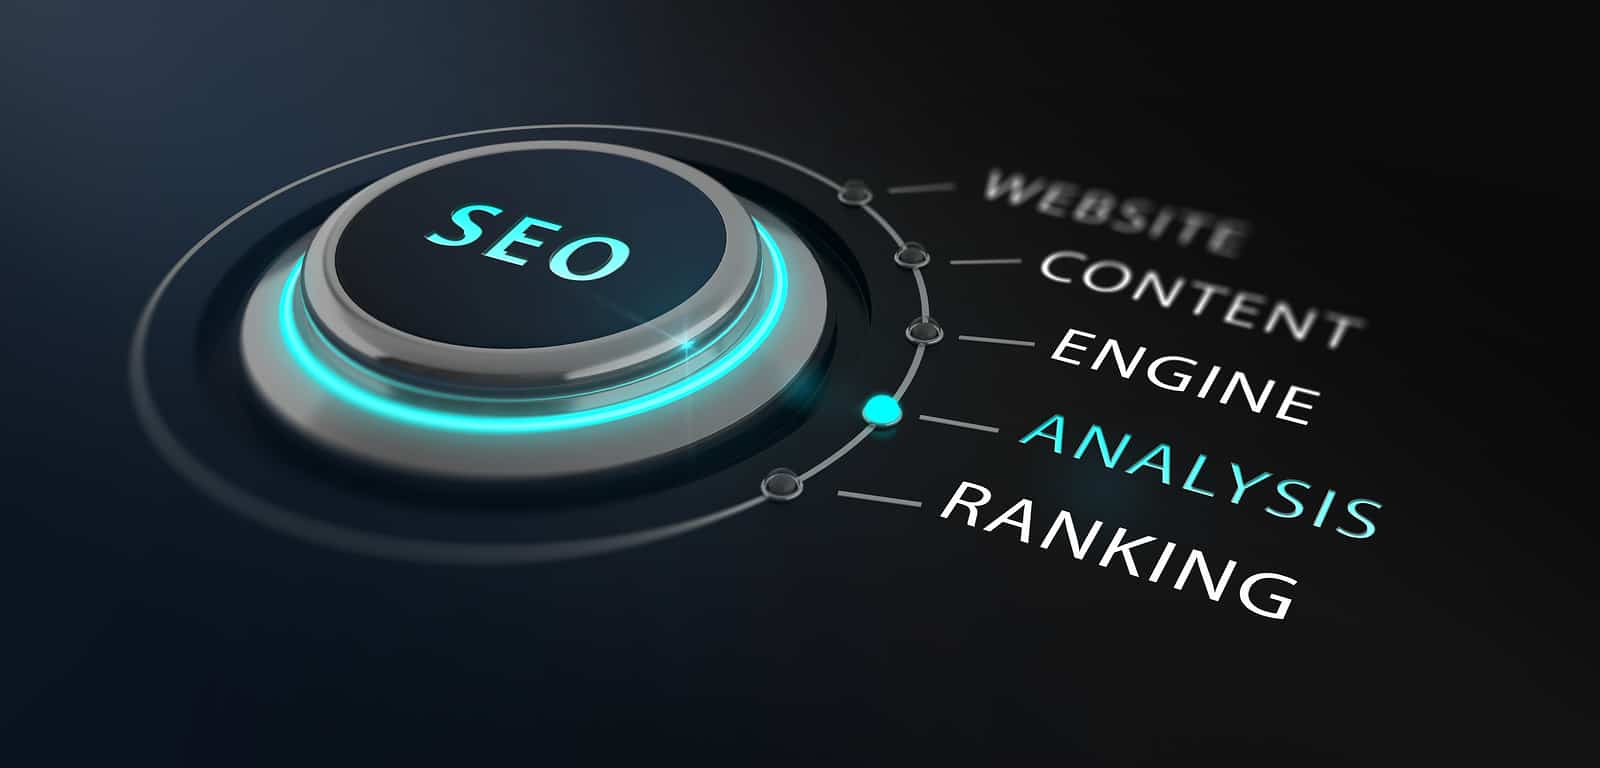 5 Foolproof SEO Tips to Help Your Website Rise in the Rankings